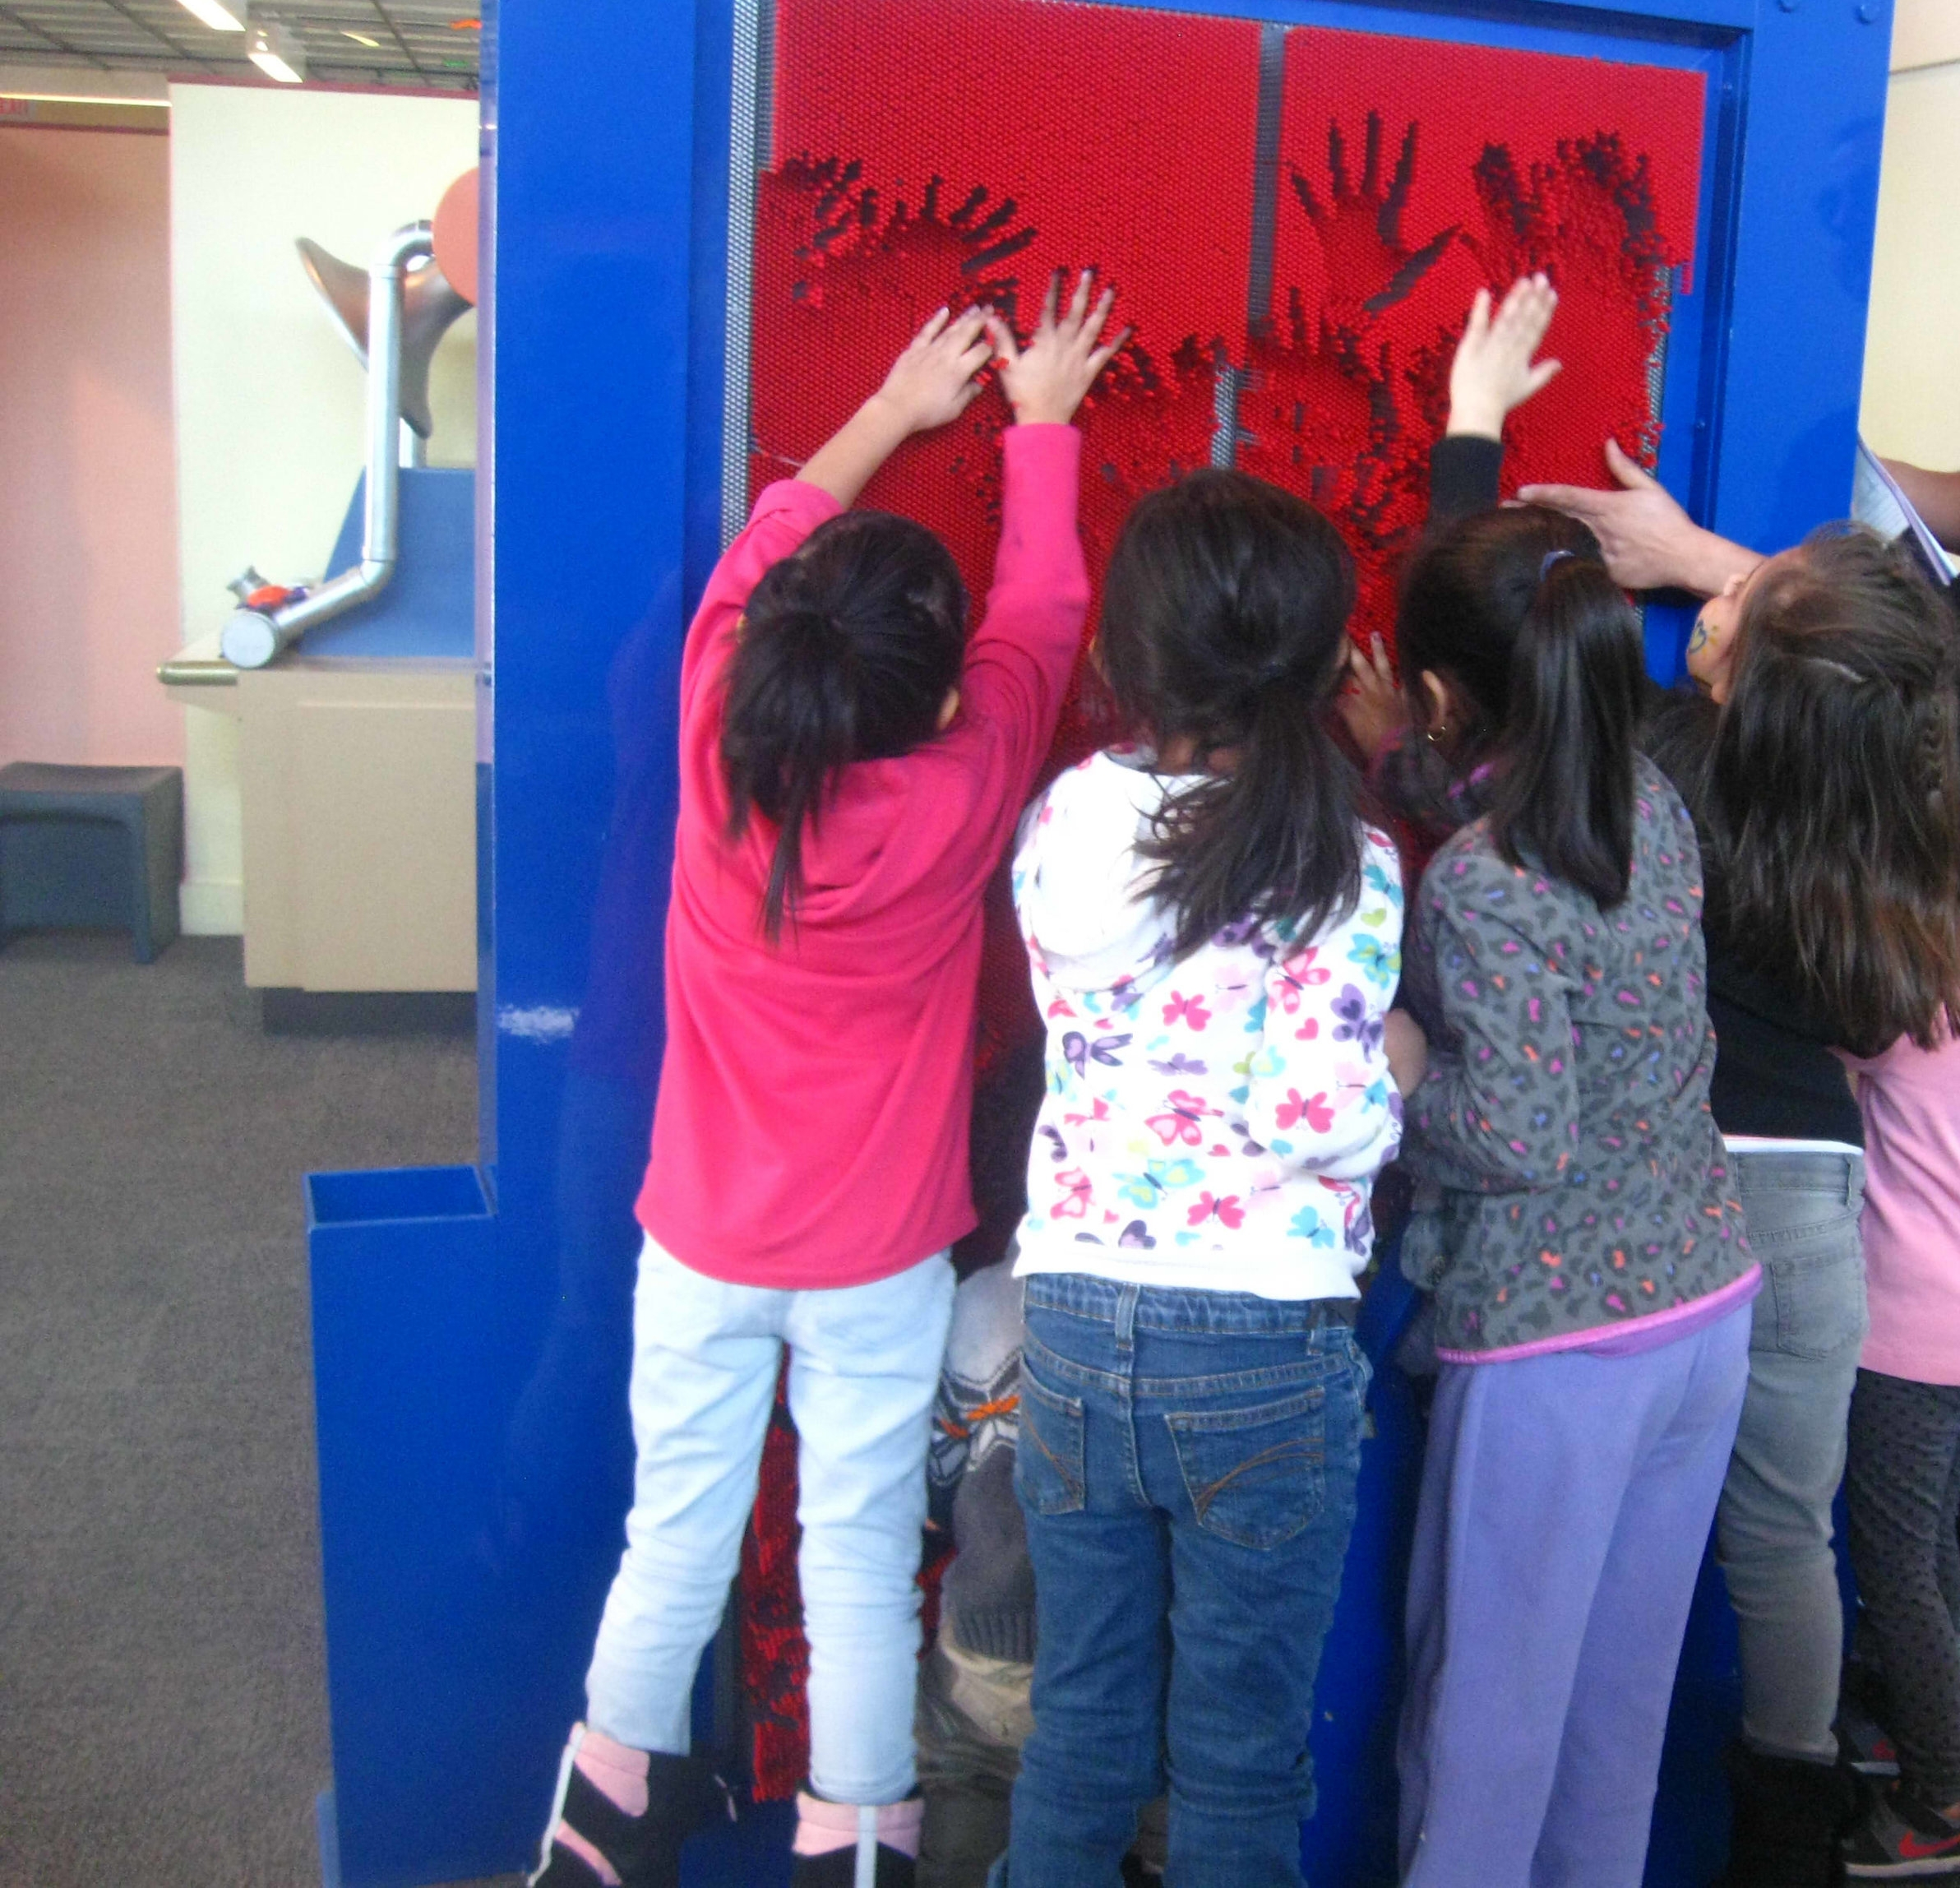 Our field trip to the Children's Kohl's museum.